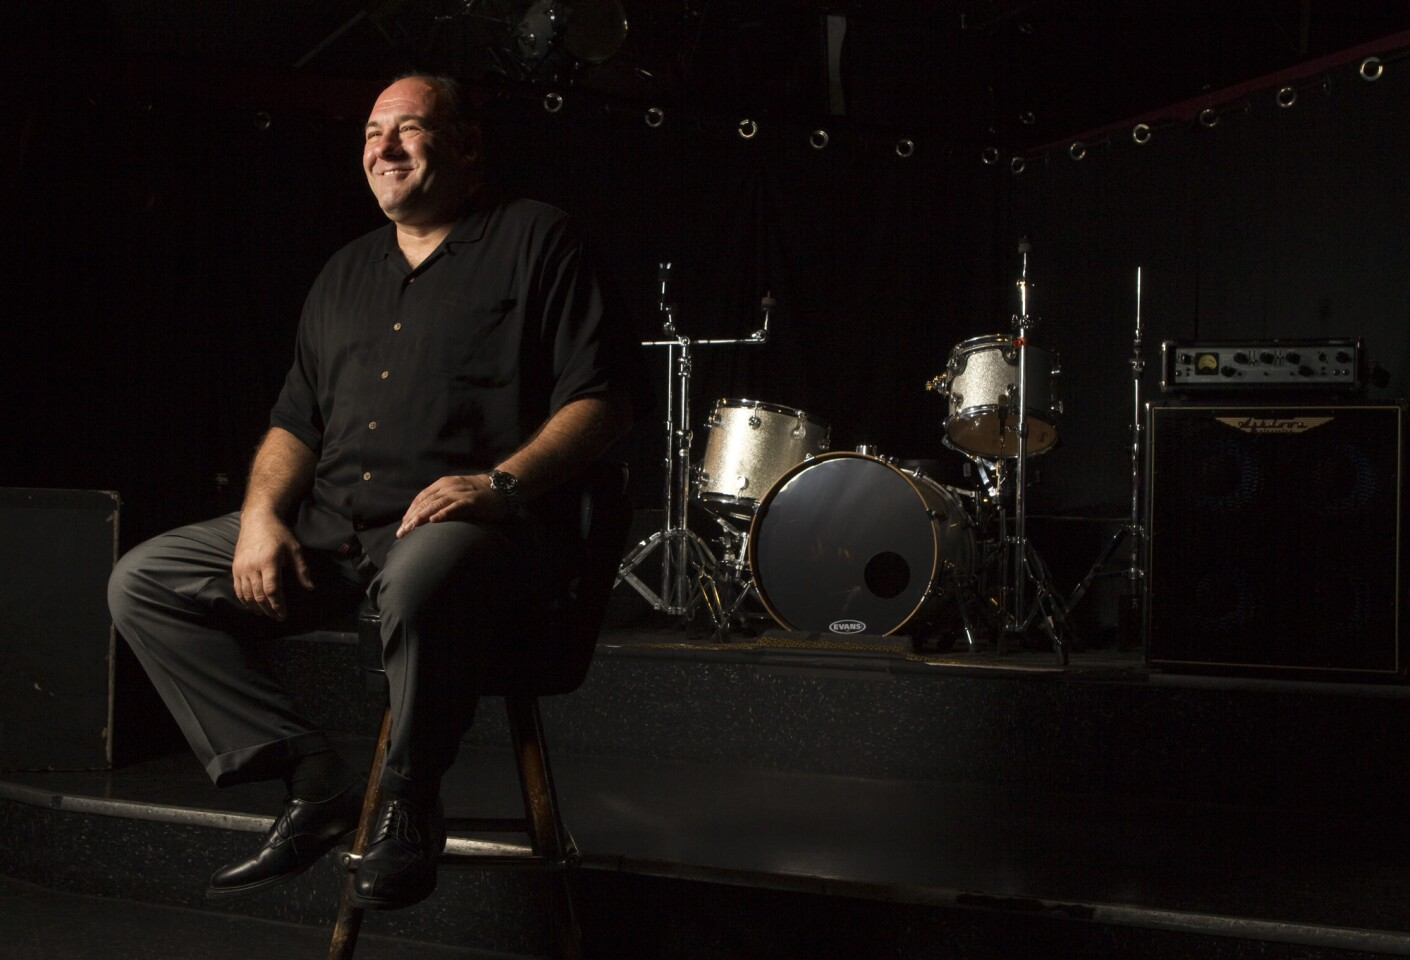 Actor James Gandolfini died Wednesday at age 51. Celebrities took to Twitter and other media to share their condolences.